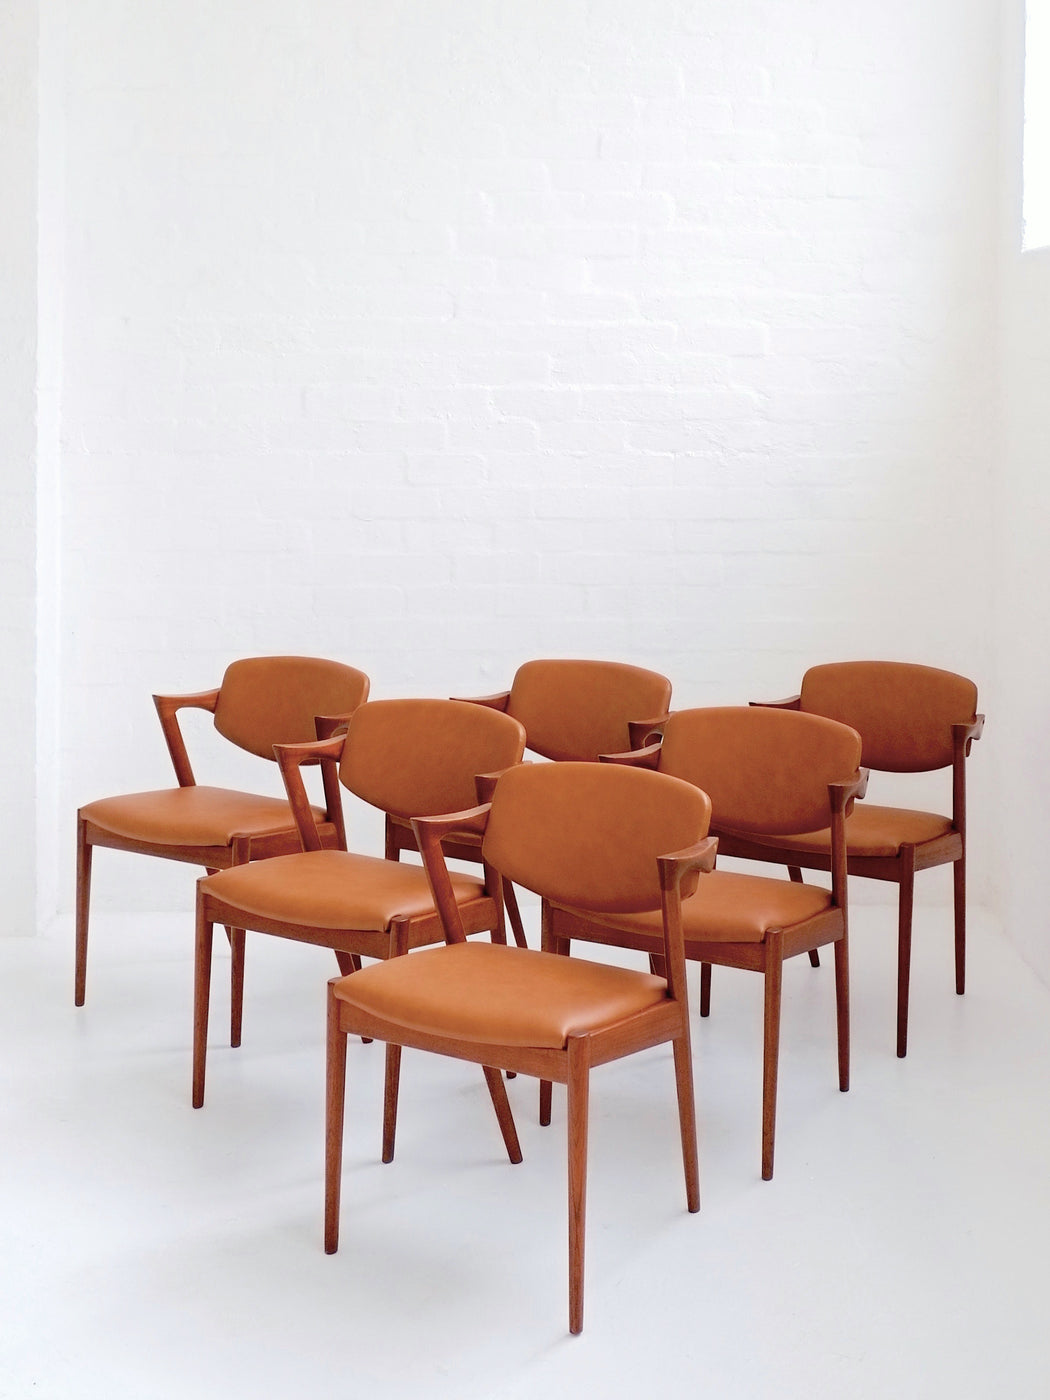 Kai Kristiansen 'Model #42' Chairs